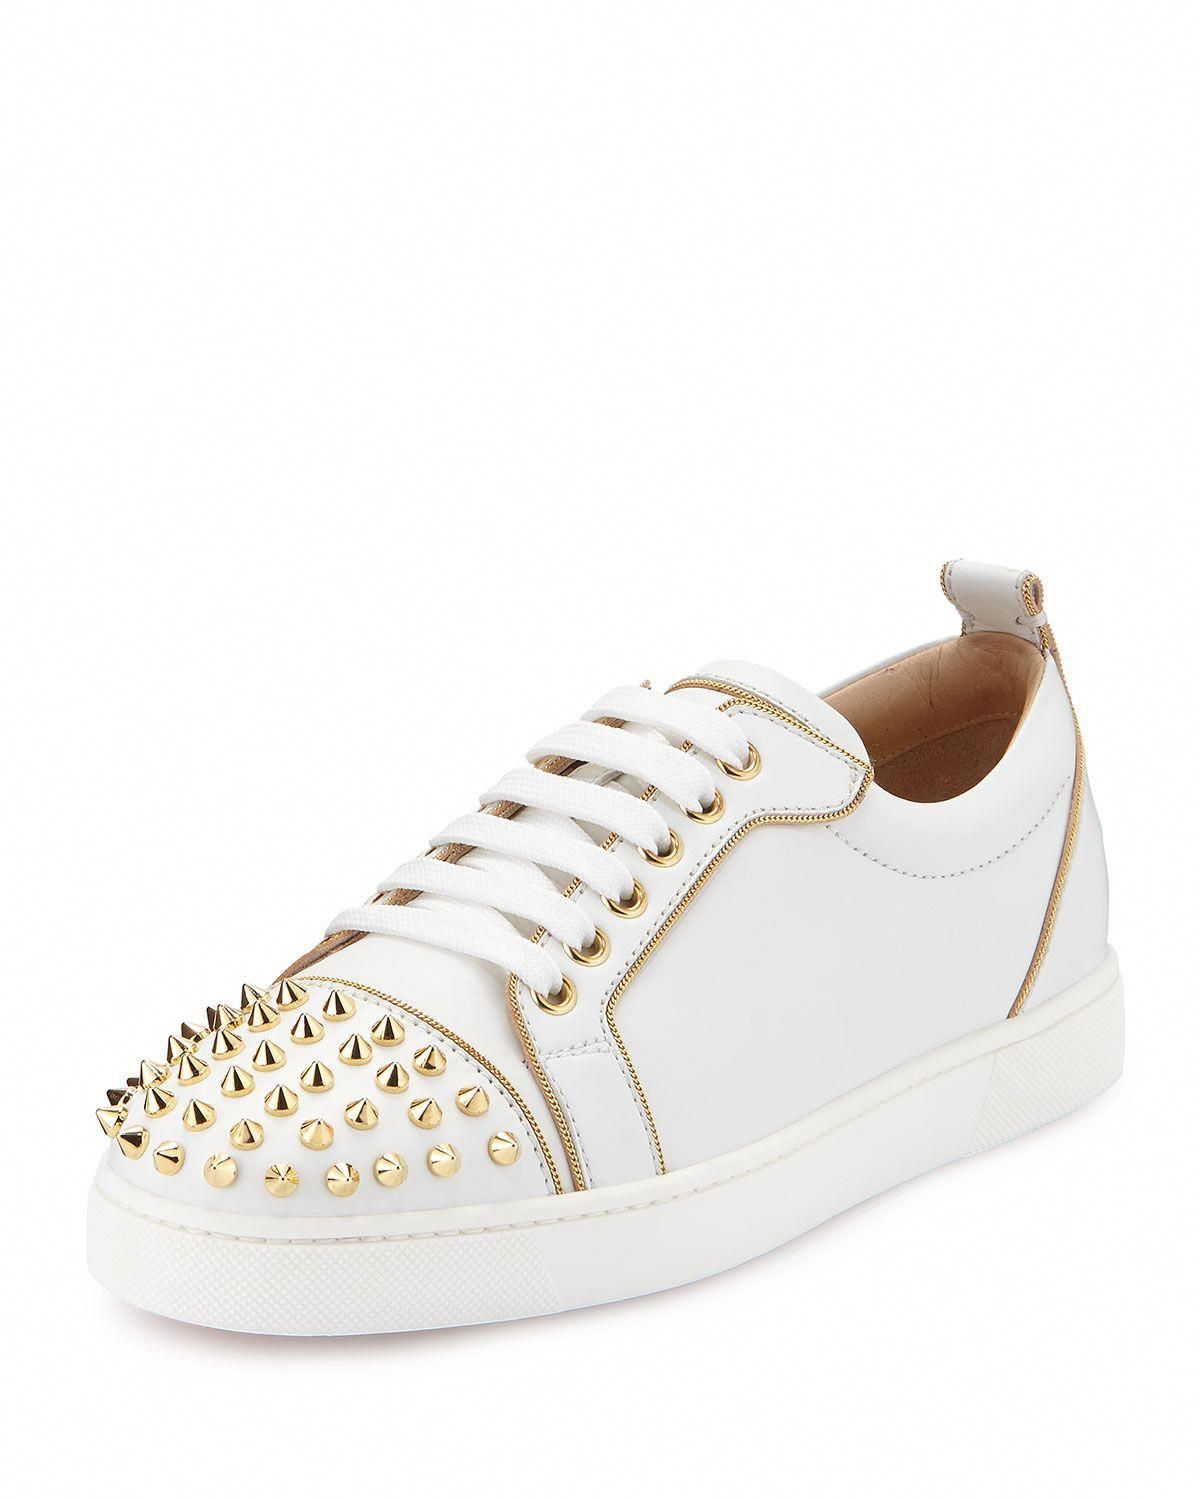 Rush Spiked Leather Low-Top Sneaker 8f19d71d8d